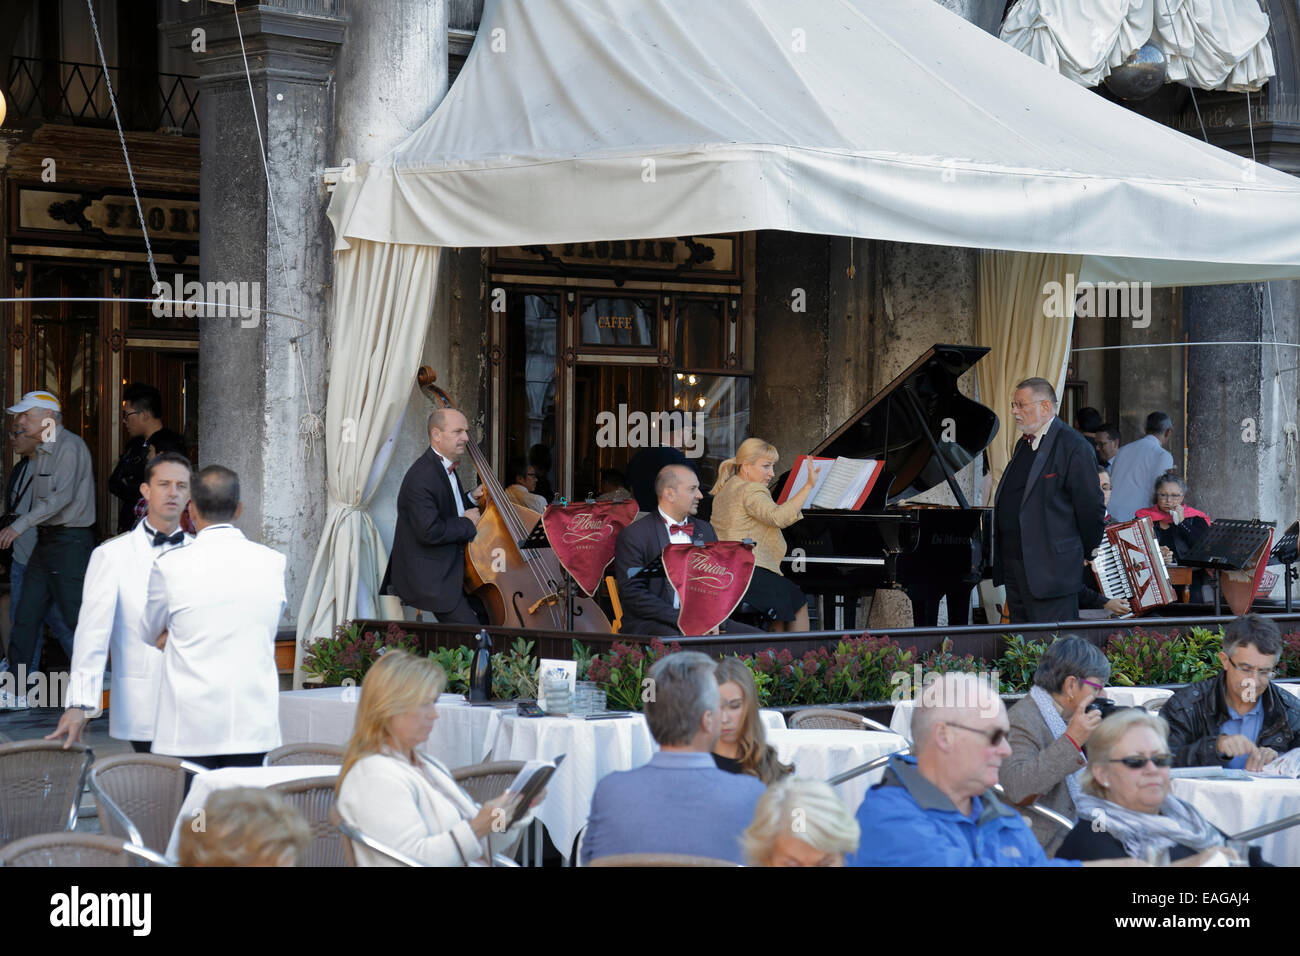 Orchestra, waiters and customers outside the Caffe Florian, Venice, Italy. - Stock Image